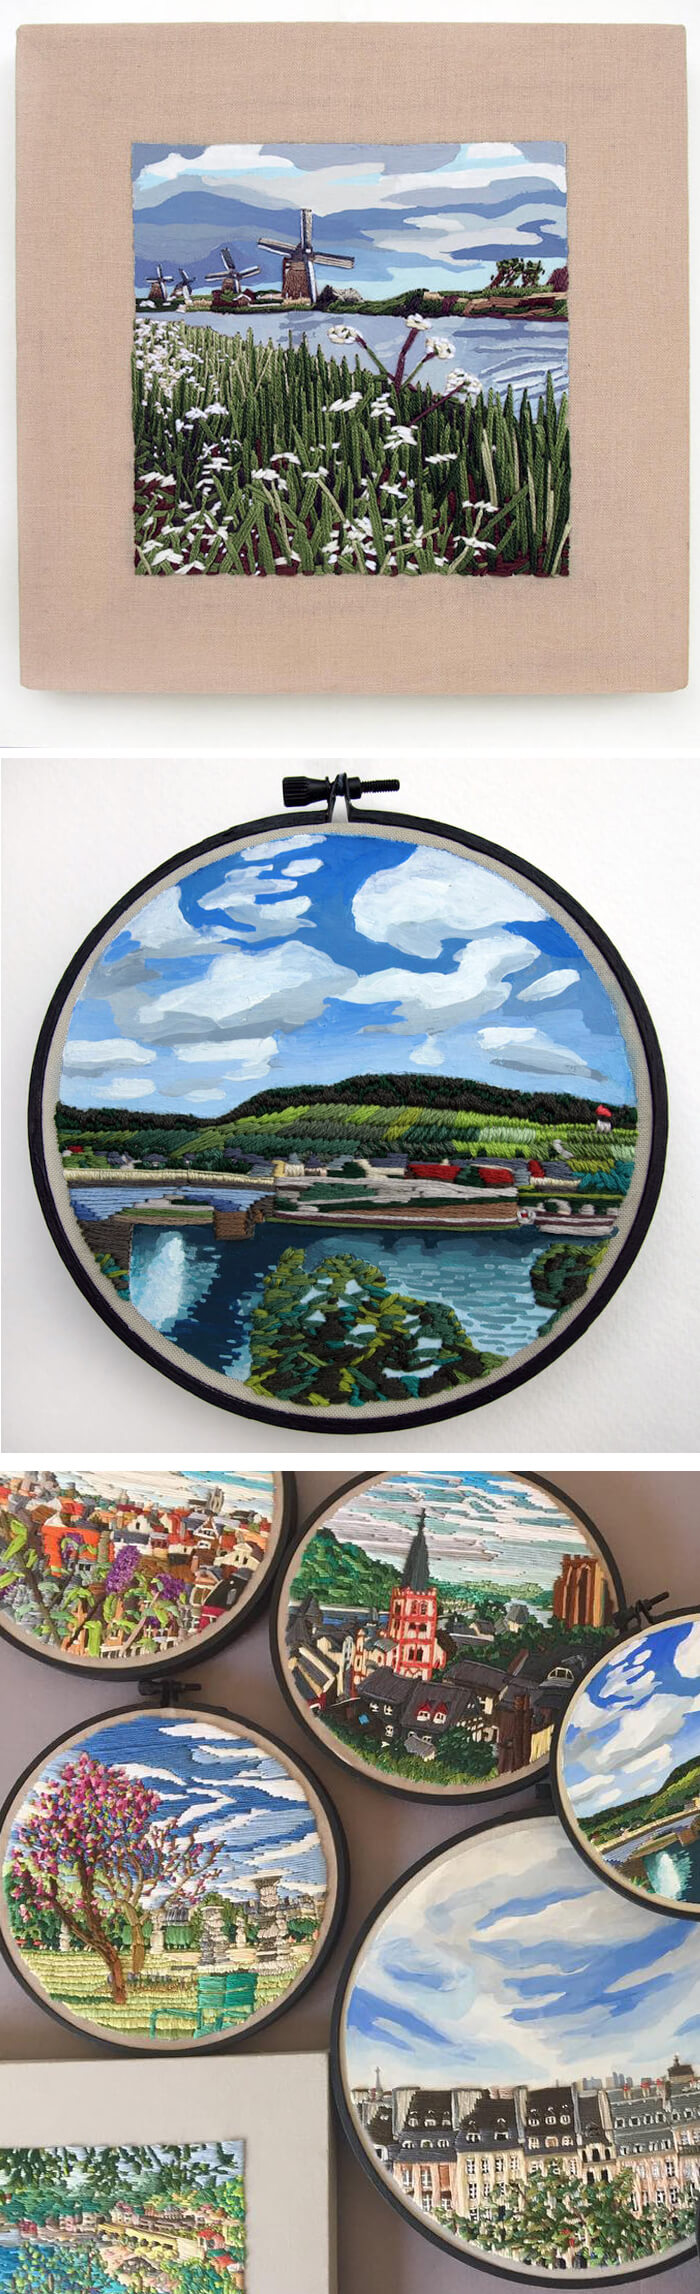 Mixed media embroidery by Libby Williams